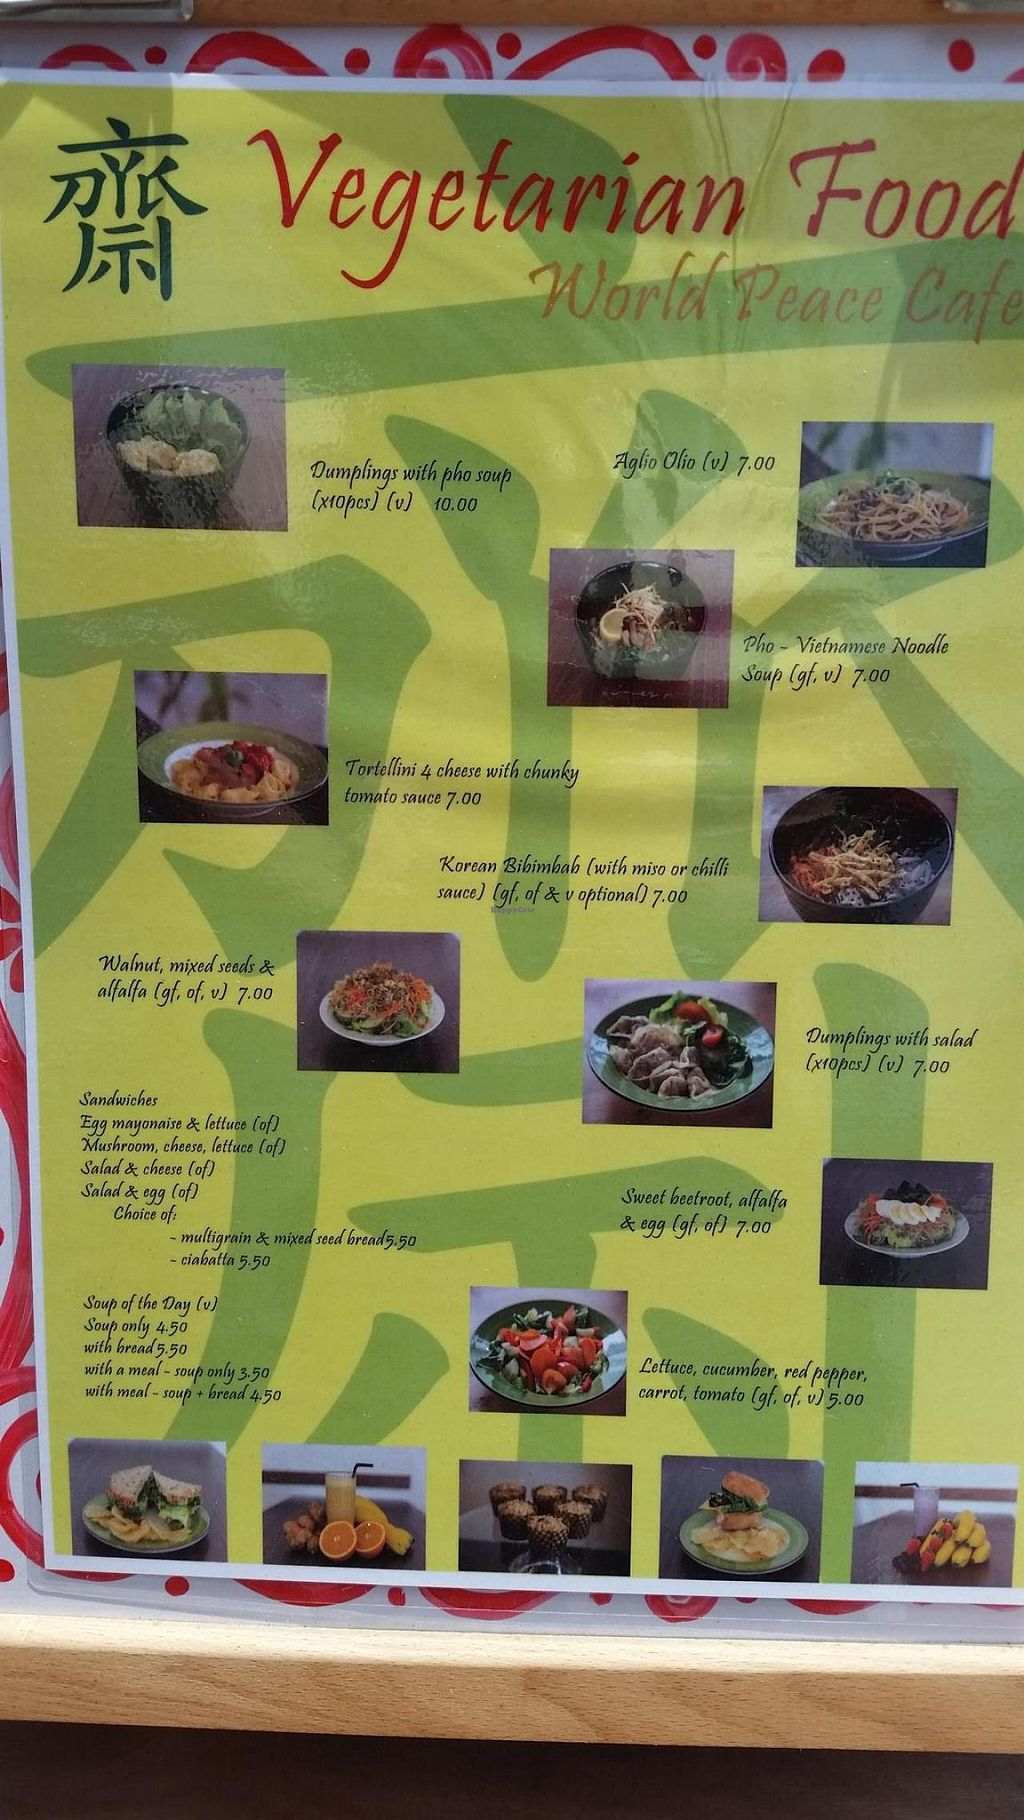 """Photo of World Peace Cafe  by <a href=""""/members/profile/JimmySeah"""">JimmySeah</a> <br/>menu  <br/> March 6, 2015  - <a href='/contact/abuse/image/32308/95079'>Report</a>"""